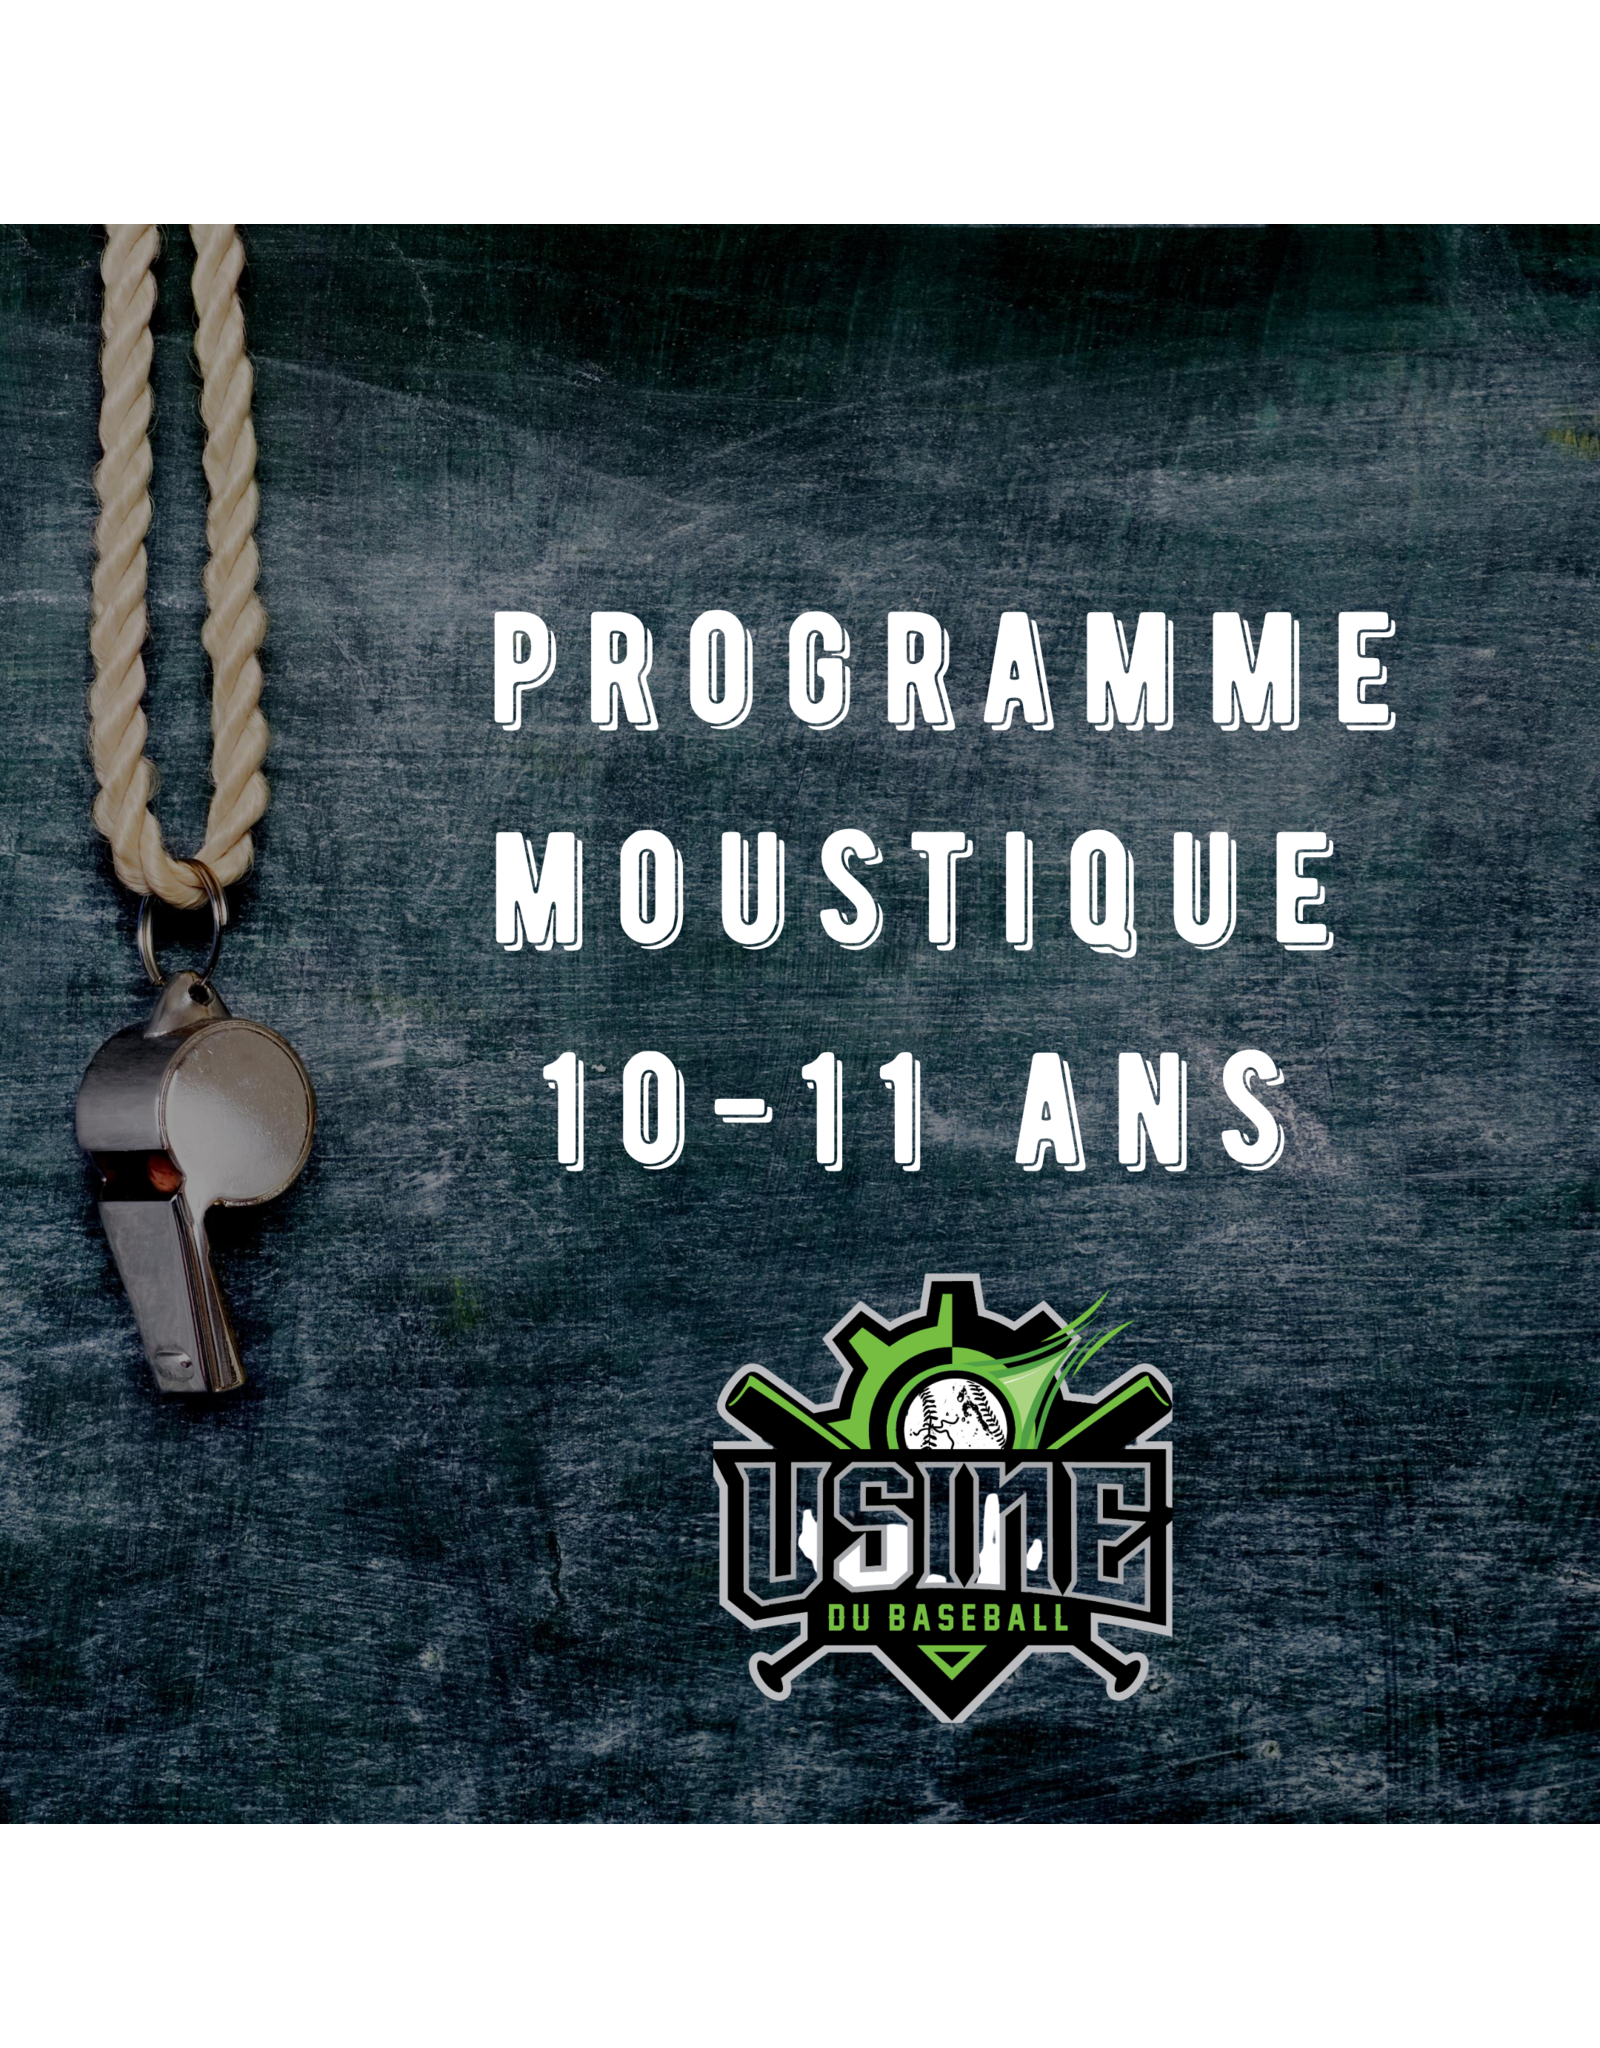 Usine du baseball Moustique Program - Winter baseball 2018-19